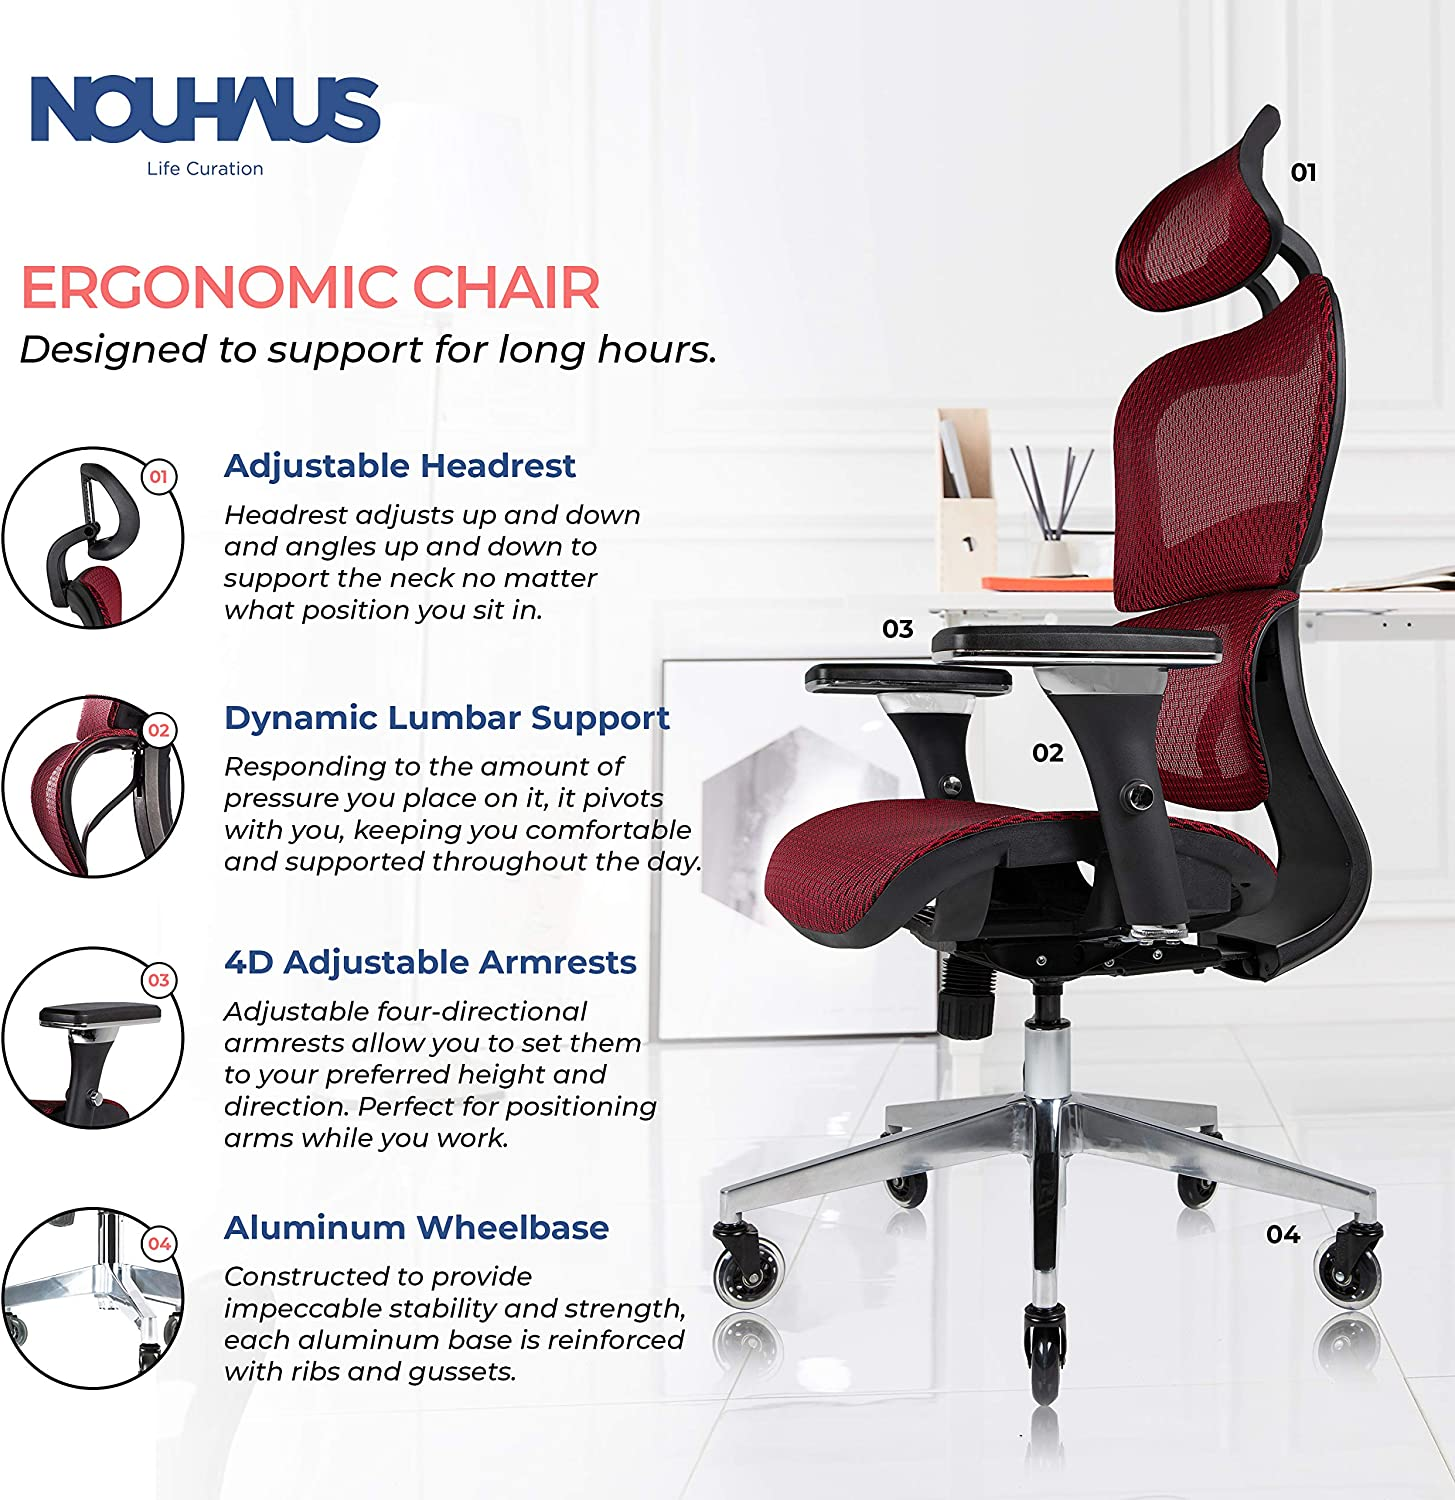 91CLWlLbZmL. AC SL1500 - What is The Best Computer Chair For Long Hours Sitting? [Comfortable and Ergonomic] - ChairPicks